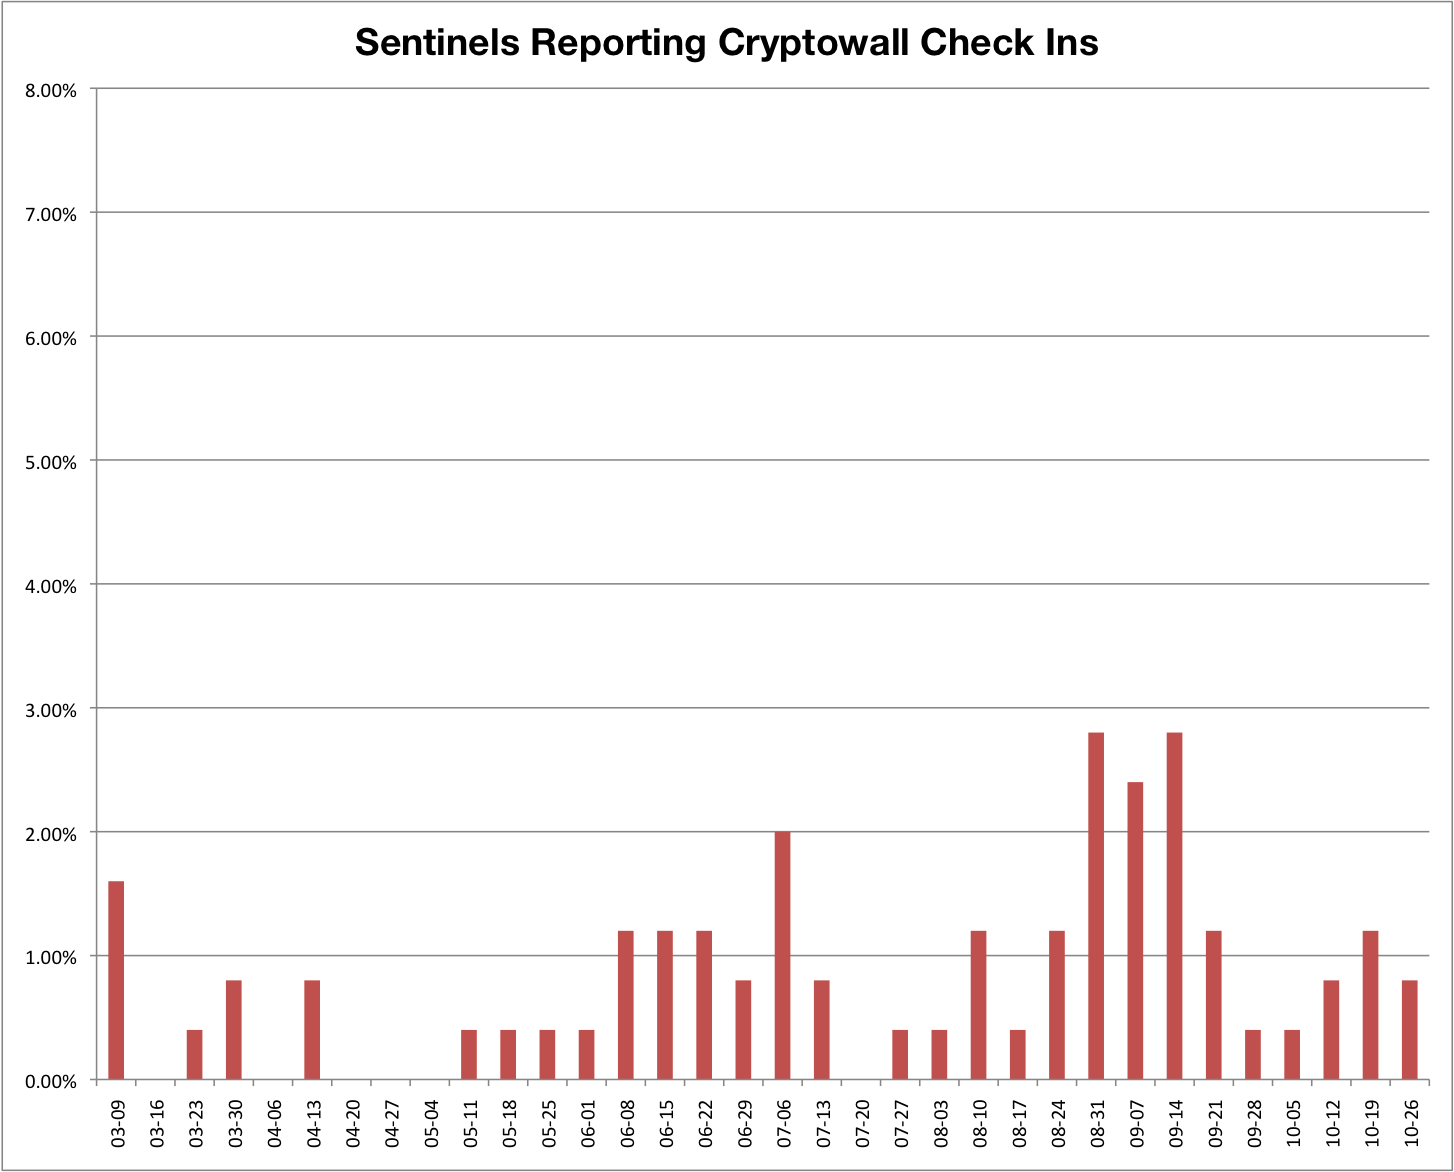 Sentinel Reporting Cryptowall Check Ins